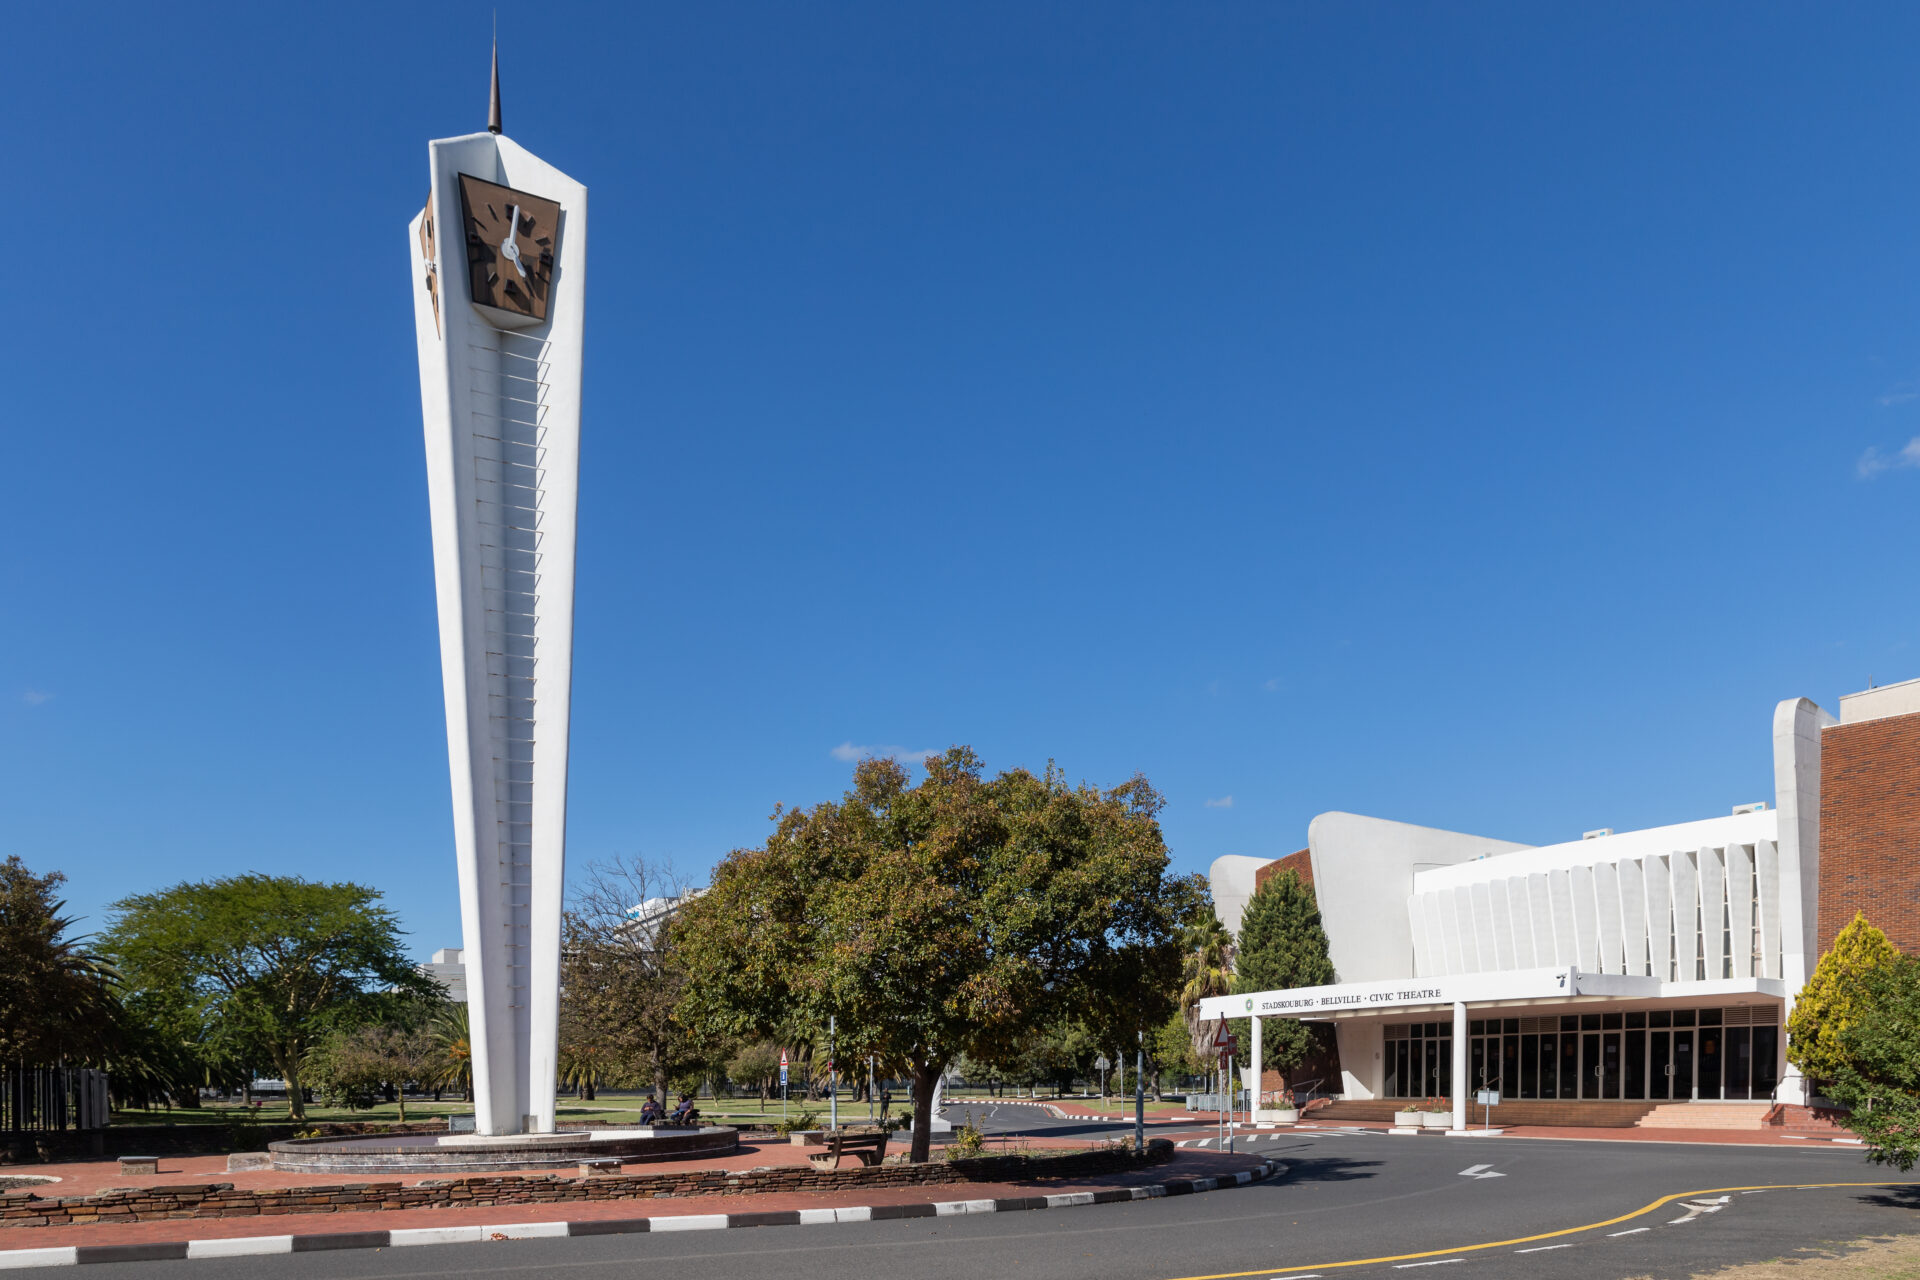 The clock tower at the Bellville Civic Centre